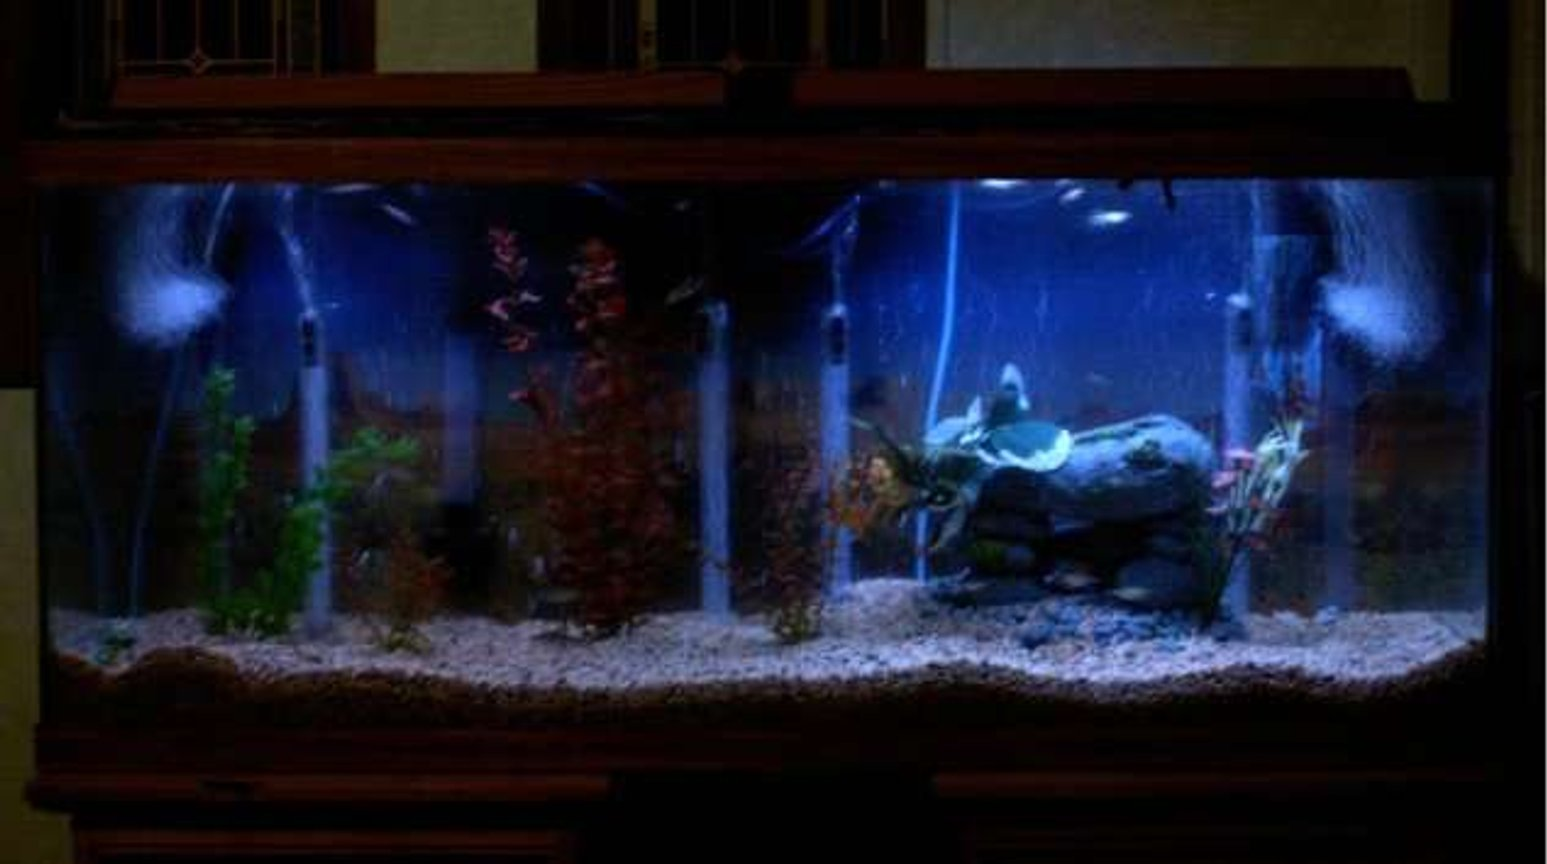 55 gallons freshwater fish tank (mostly fish and non-living decorations) - My tank at night will get better pic